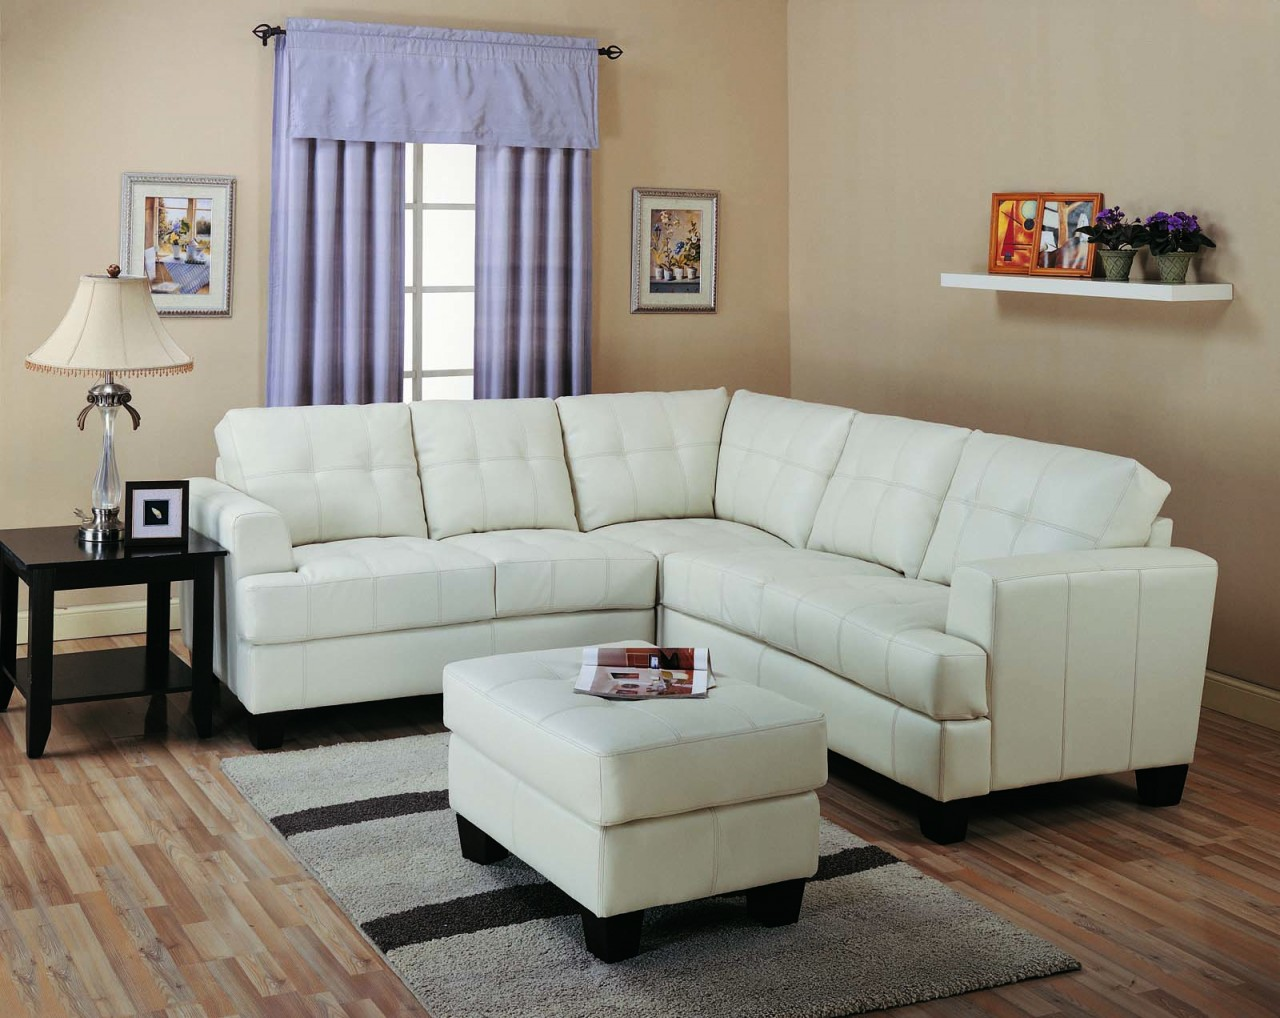 Types of best small sectional couches for small living for Sectionals for small rooms canada